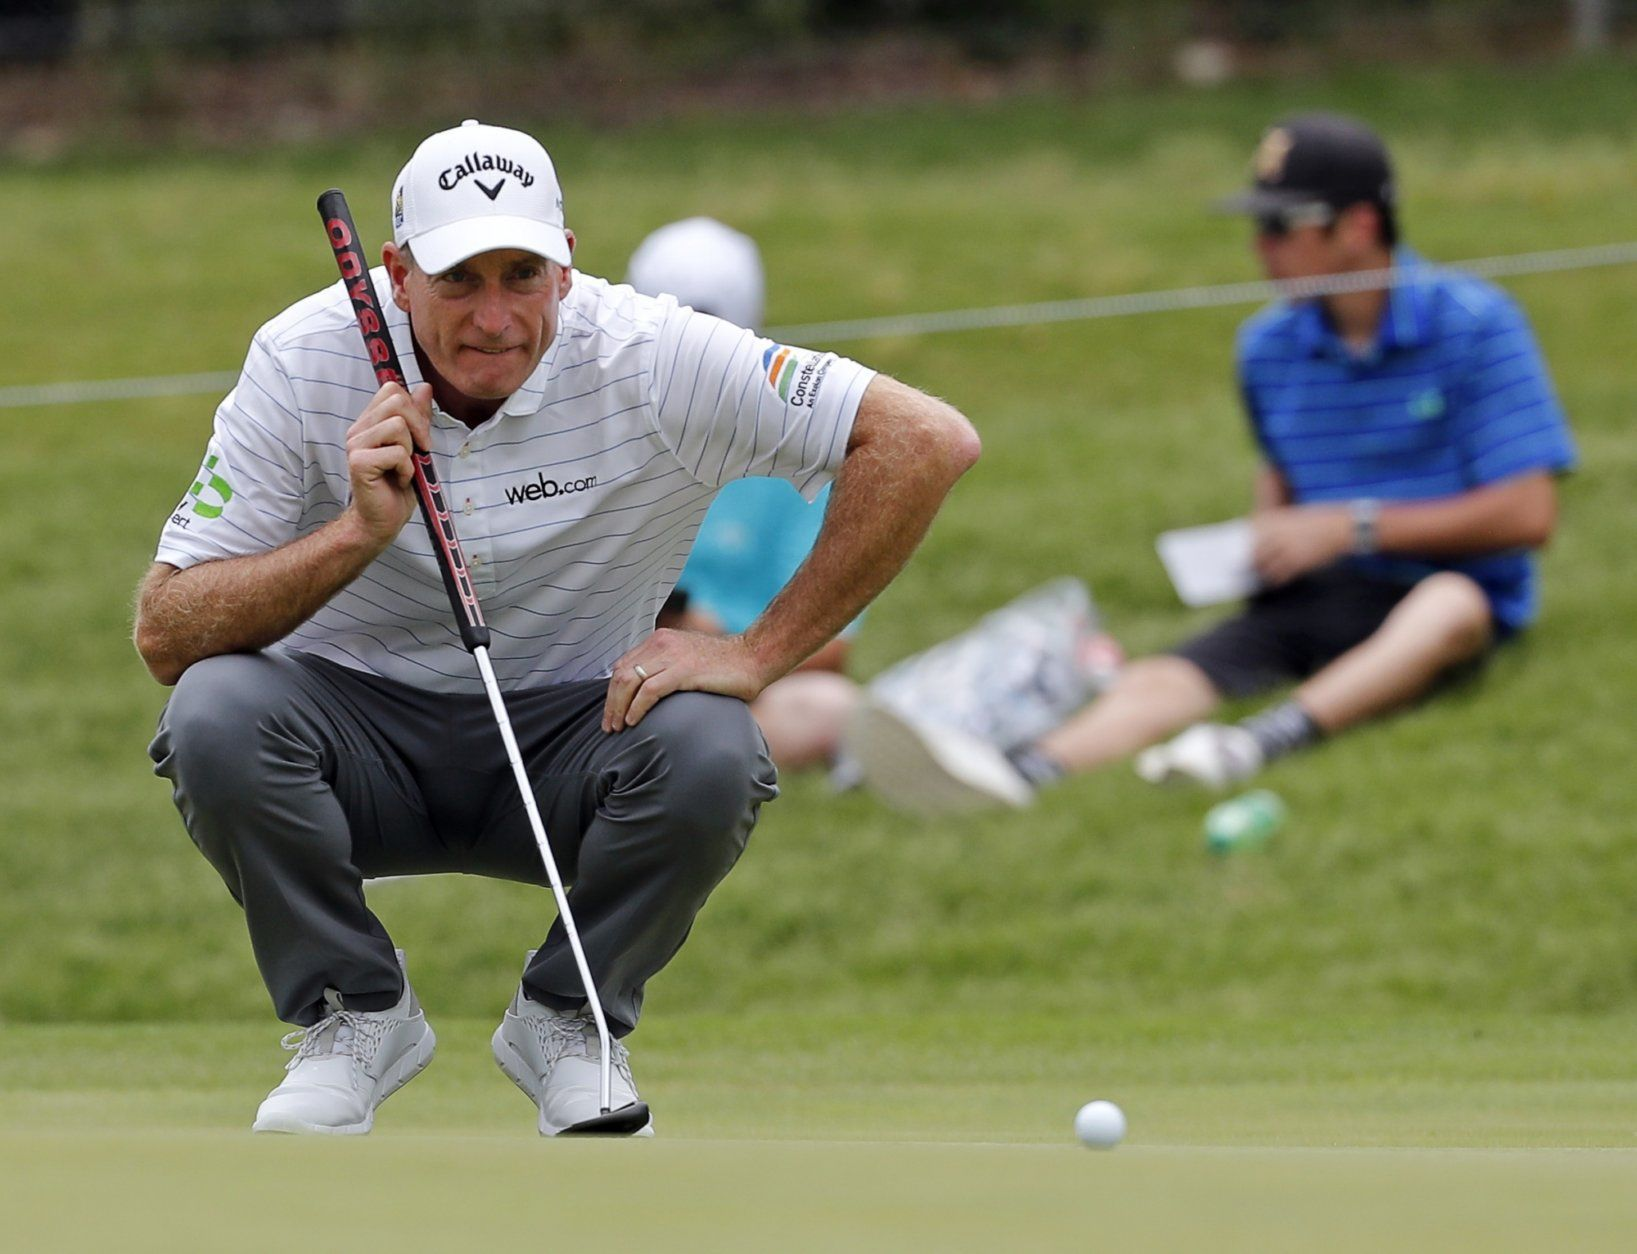 Na Settles For 69, 2-shot Colonial Lead Over Spieth, Furyk